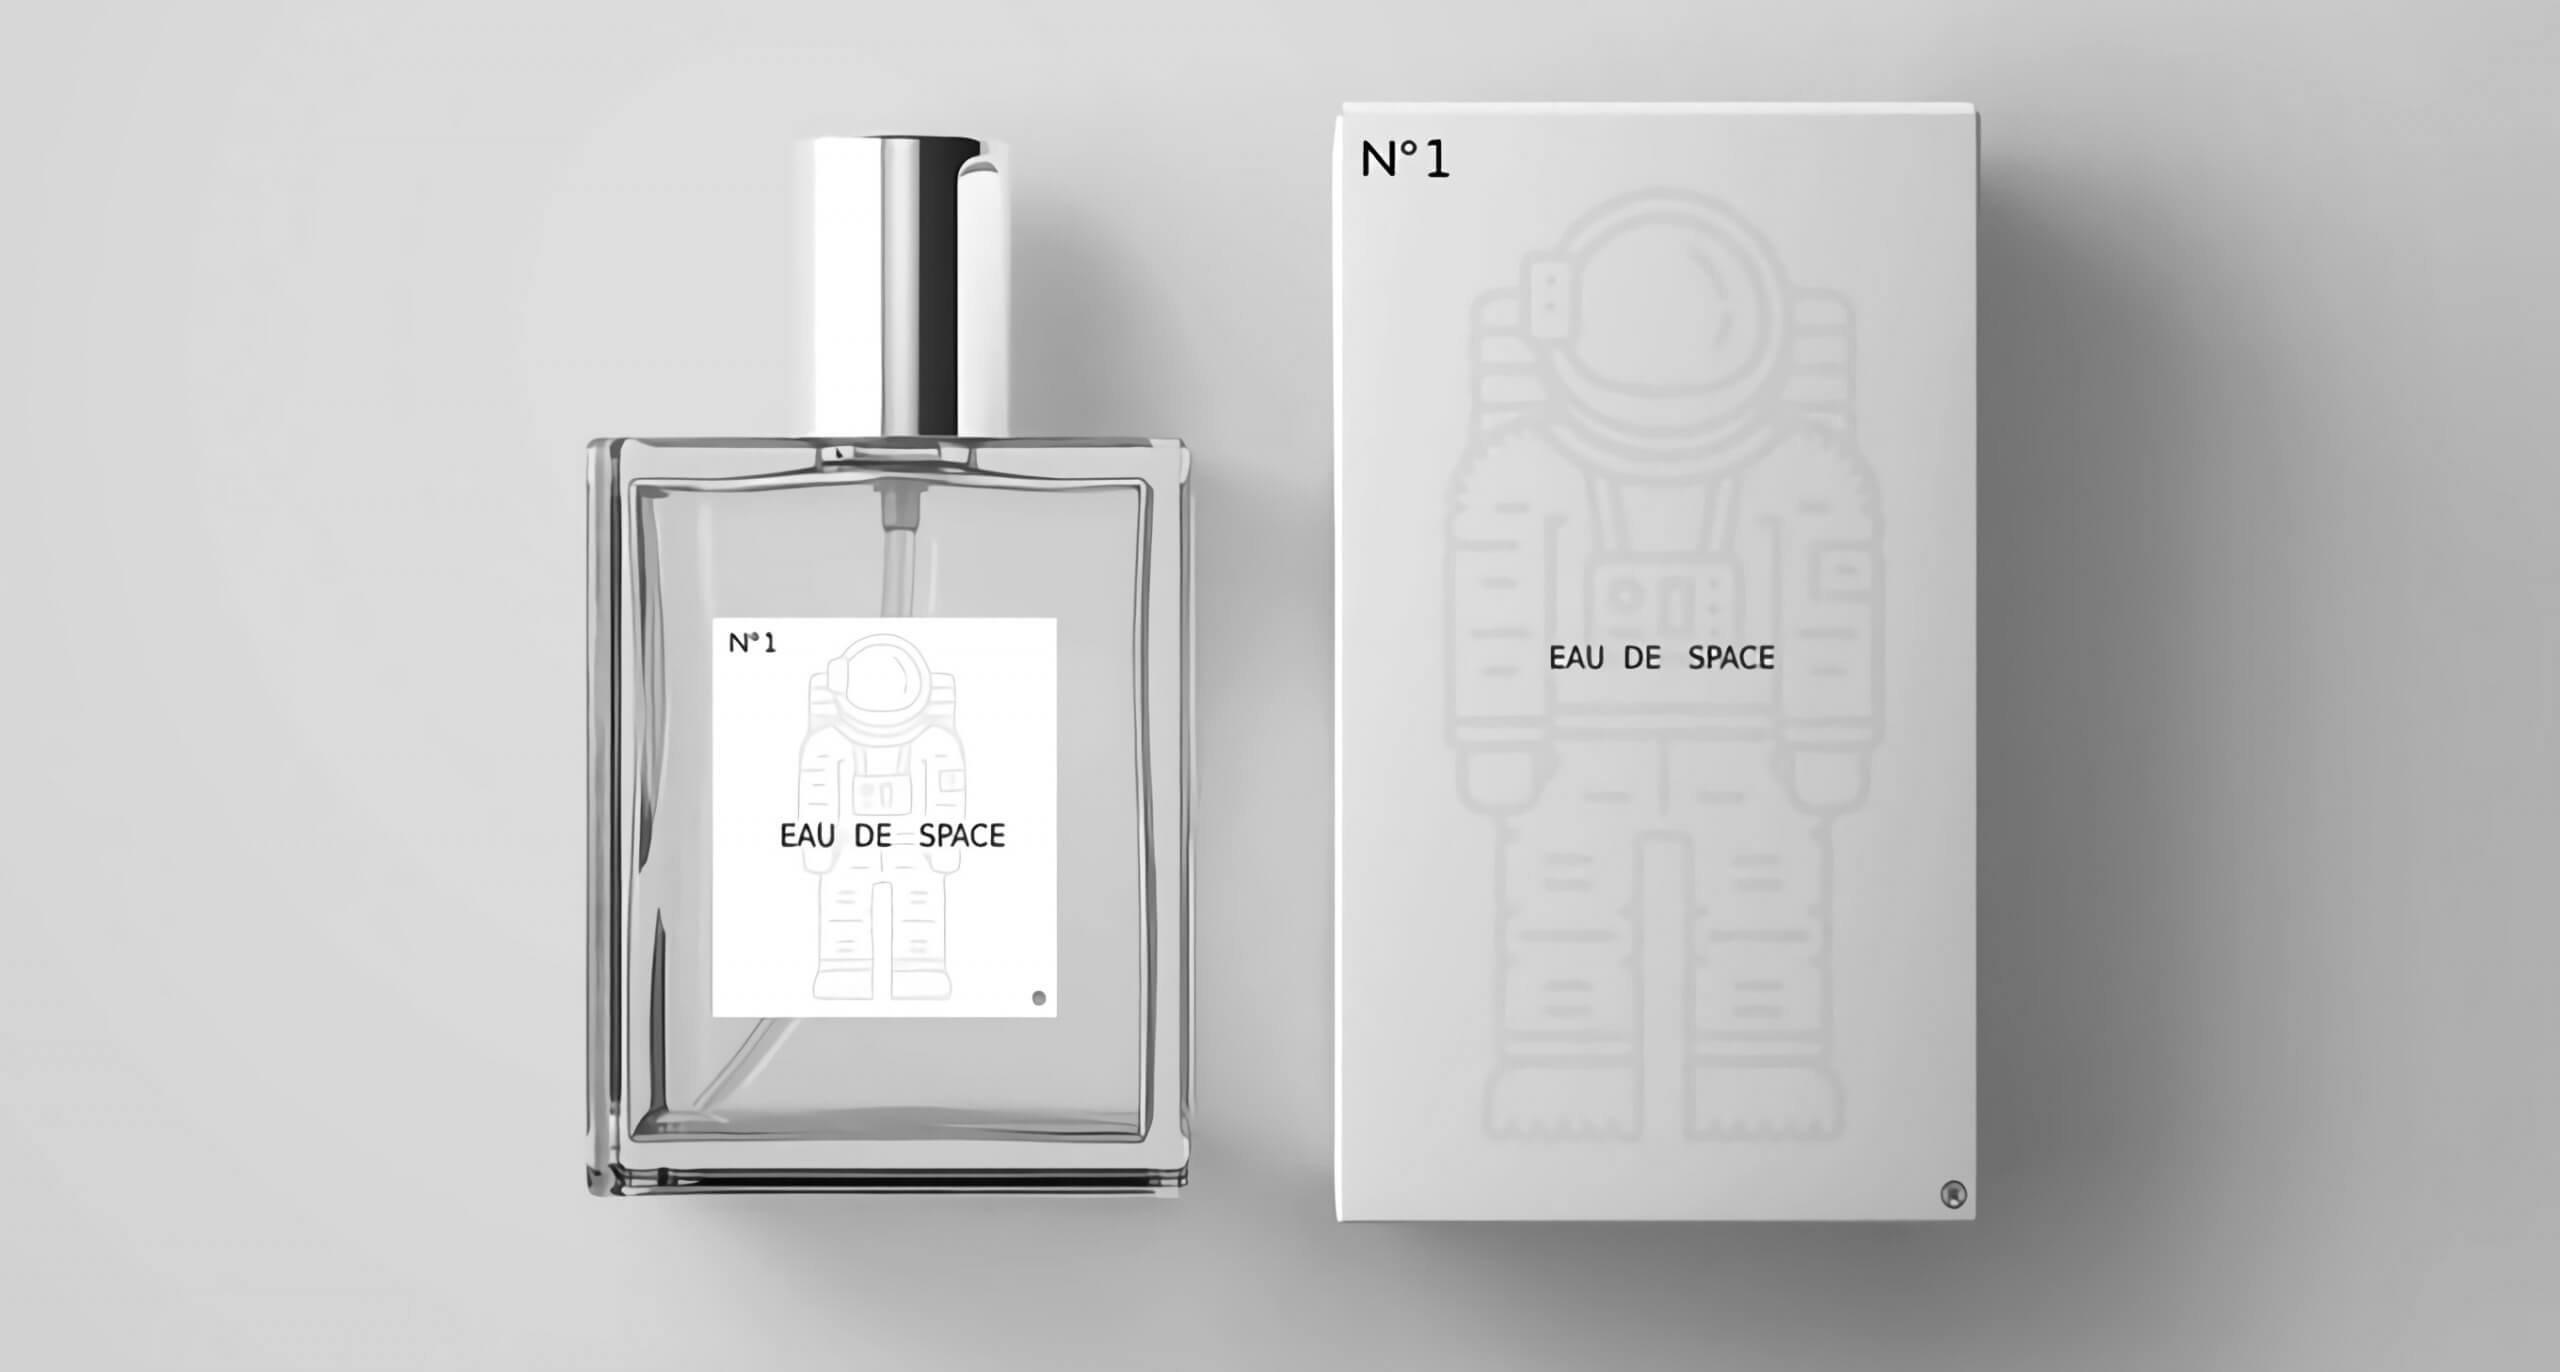 NASA released its 'space-scented' fragrance to the public in a 'one-off production'